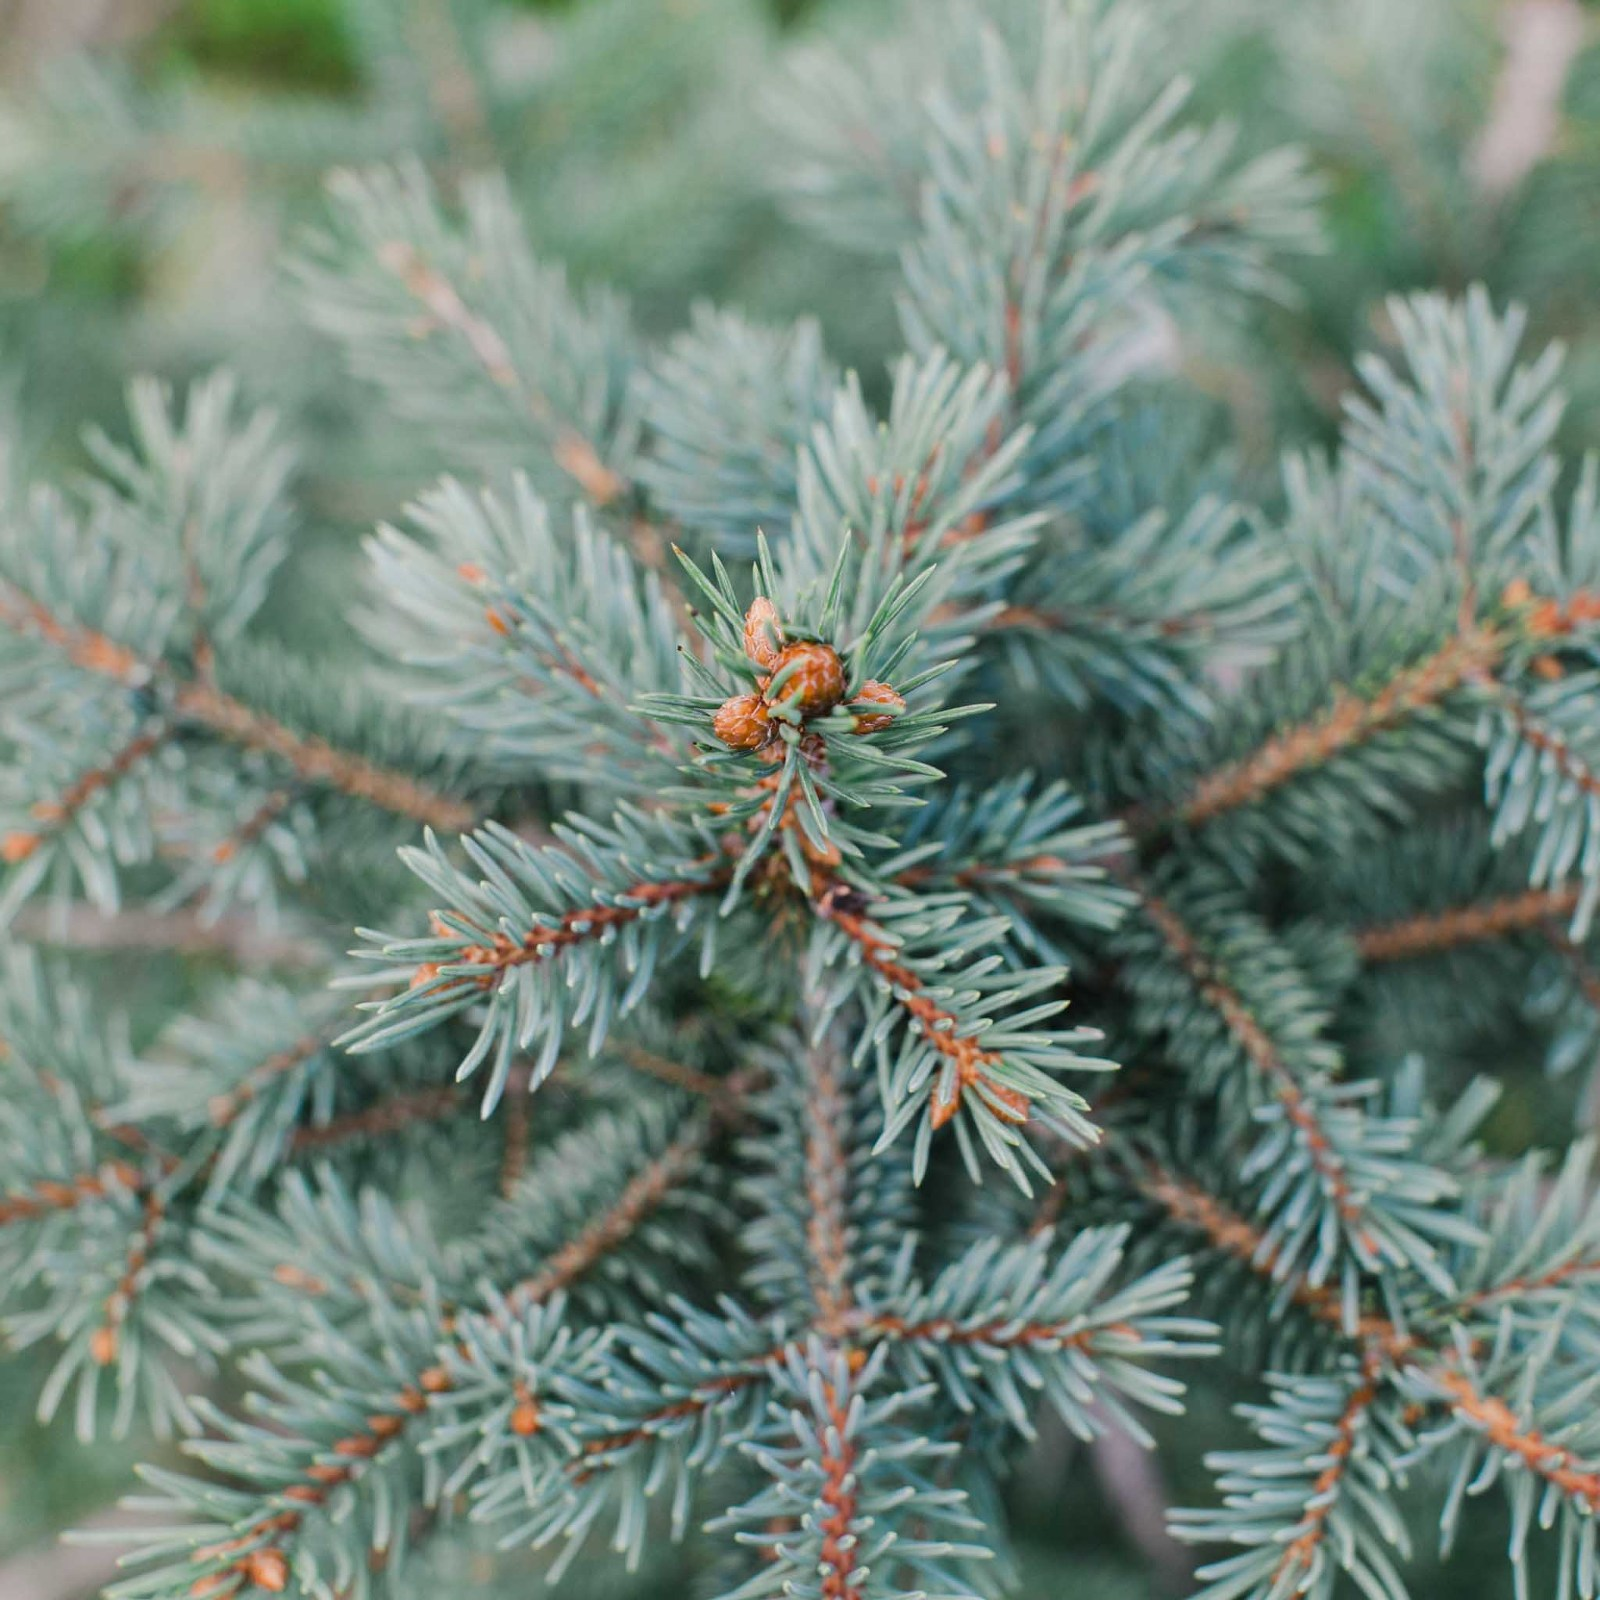 Close up of a Christmas tree